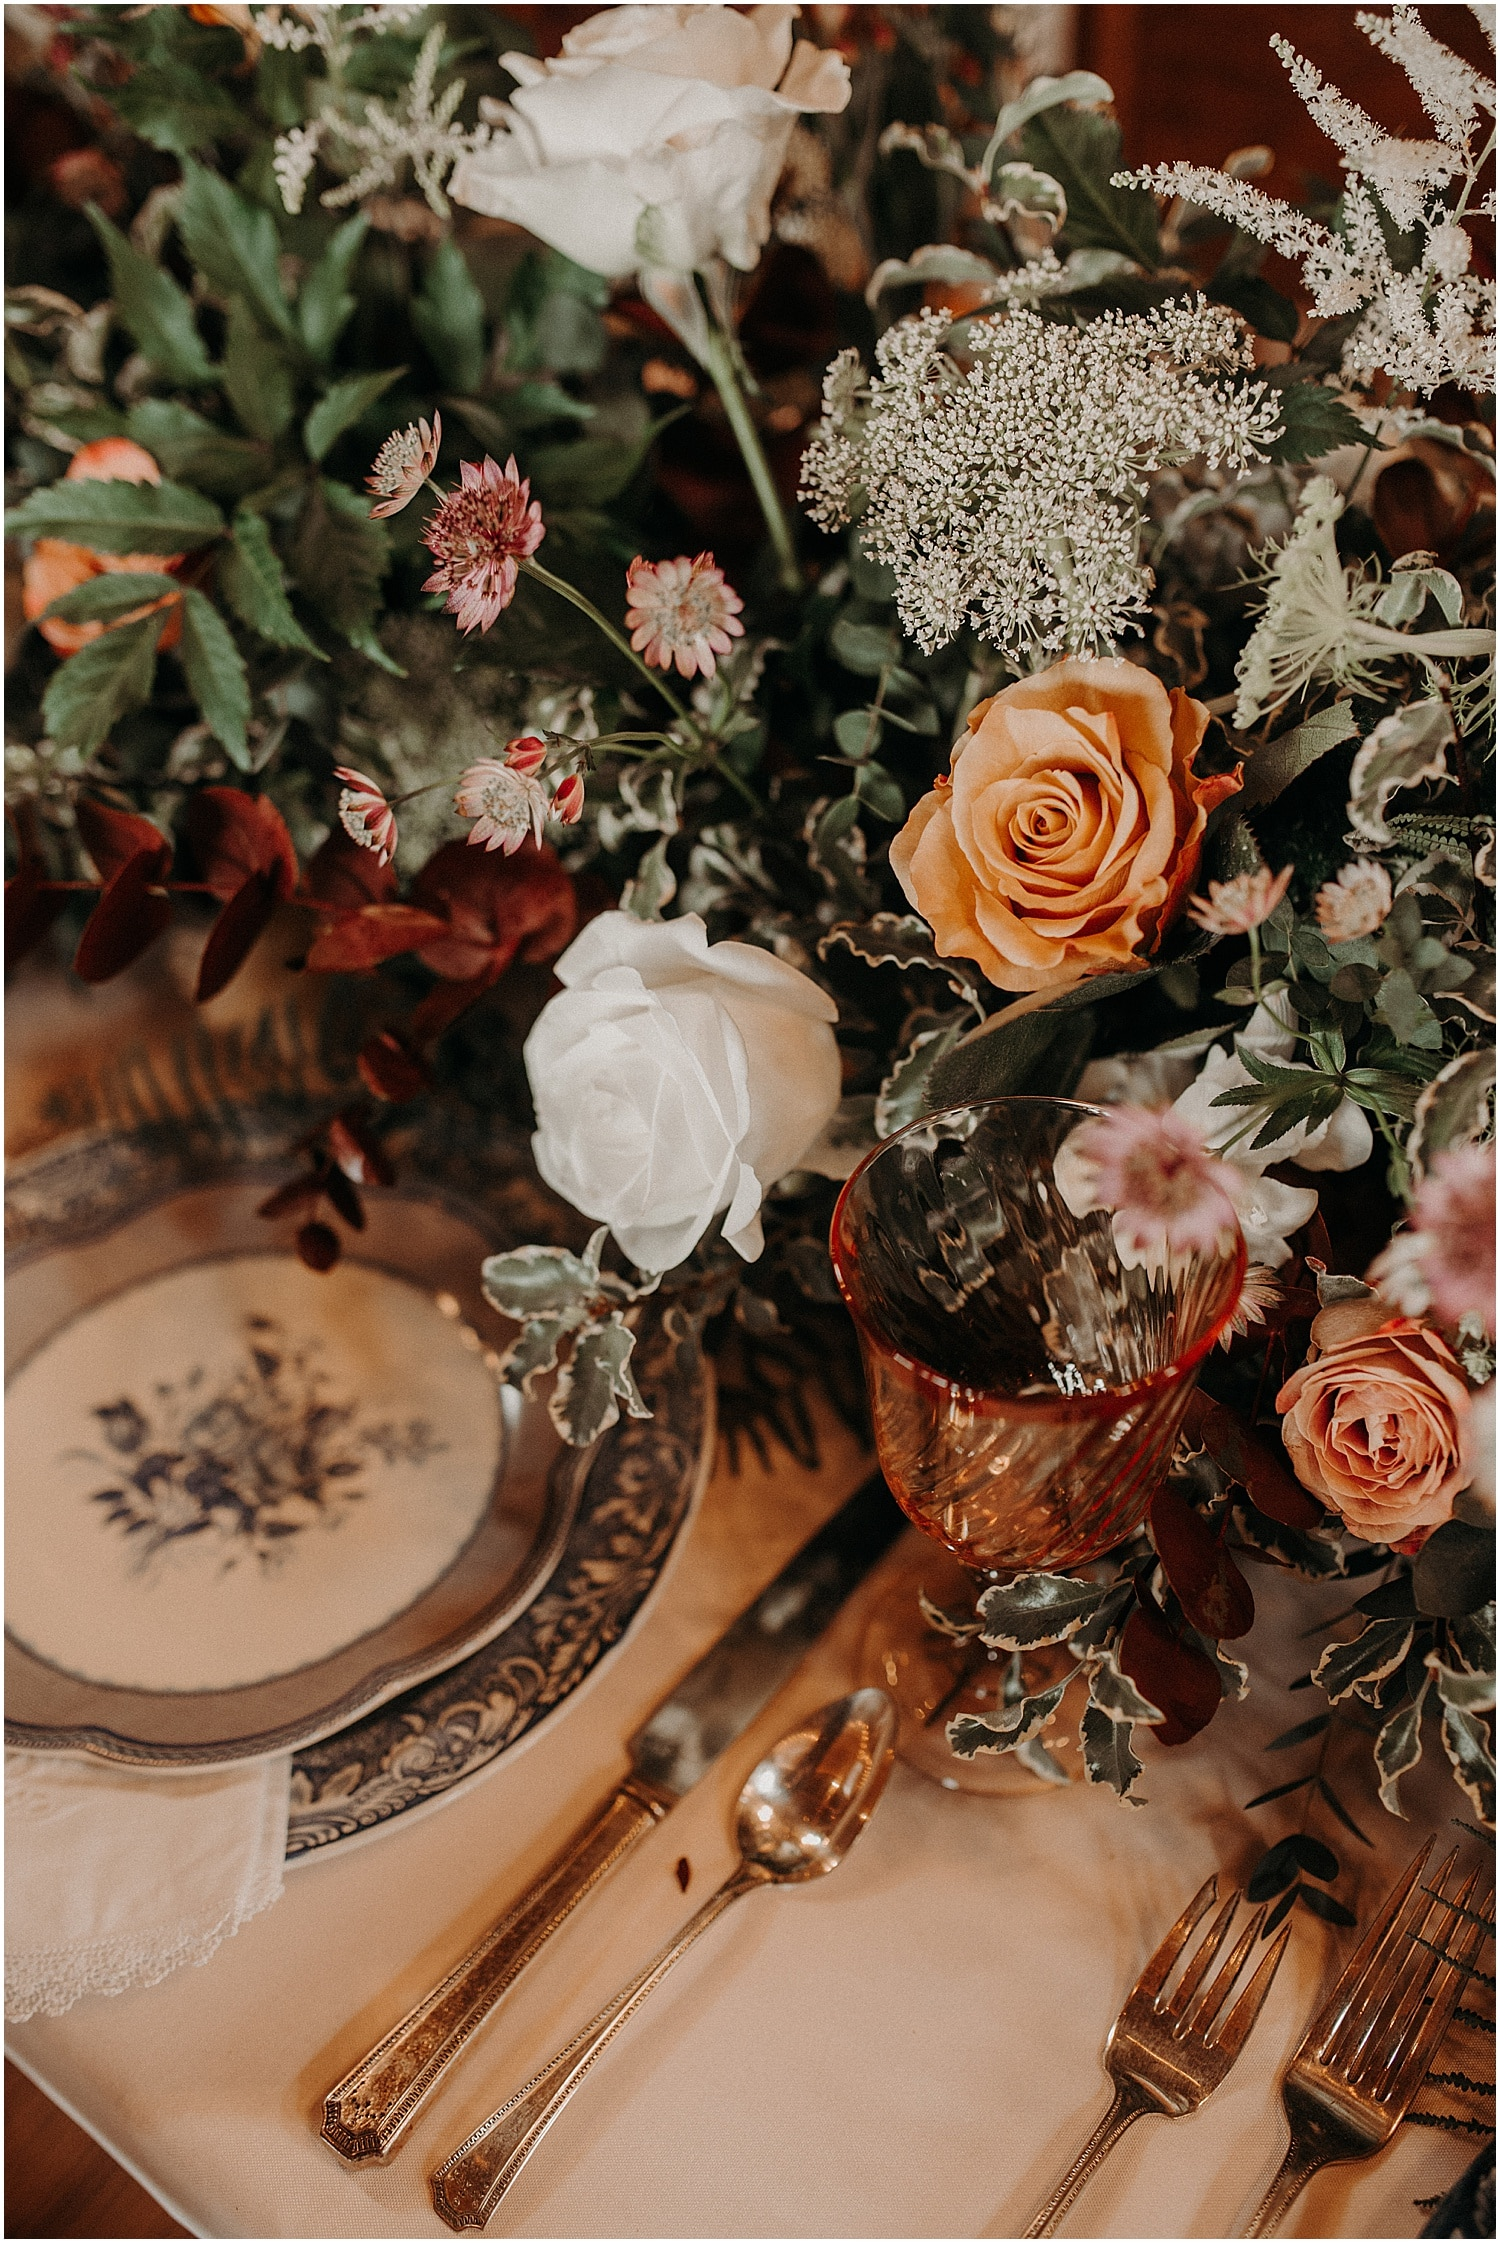 Tablescape at the Wildflower Workshop 2019